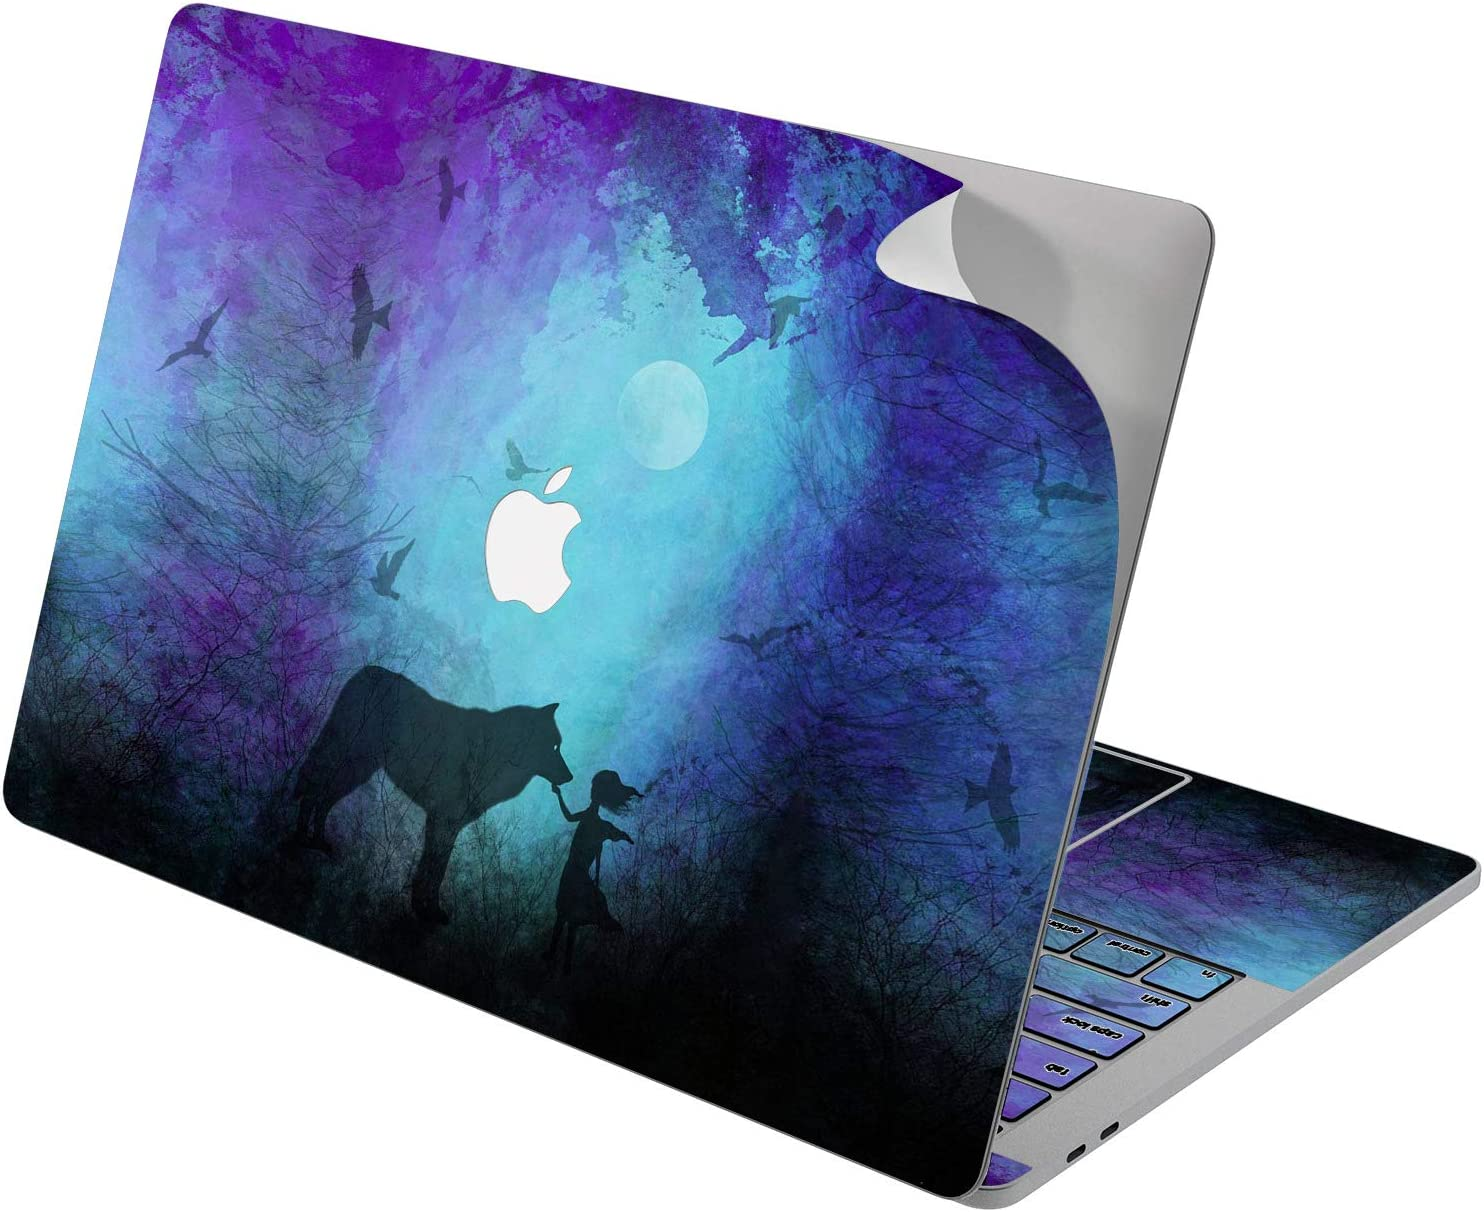 "Cavka Vinyl Decal Skin for Apple MacBook Pro 13"" 2019 15"" 2018 Air 13"" 2020 Retina 2015 Mac 11"" Mac 12"" Wolf Unique Laptop Cute Animal Blue Print Design Protective Watercolor Sticker Painted Cover"